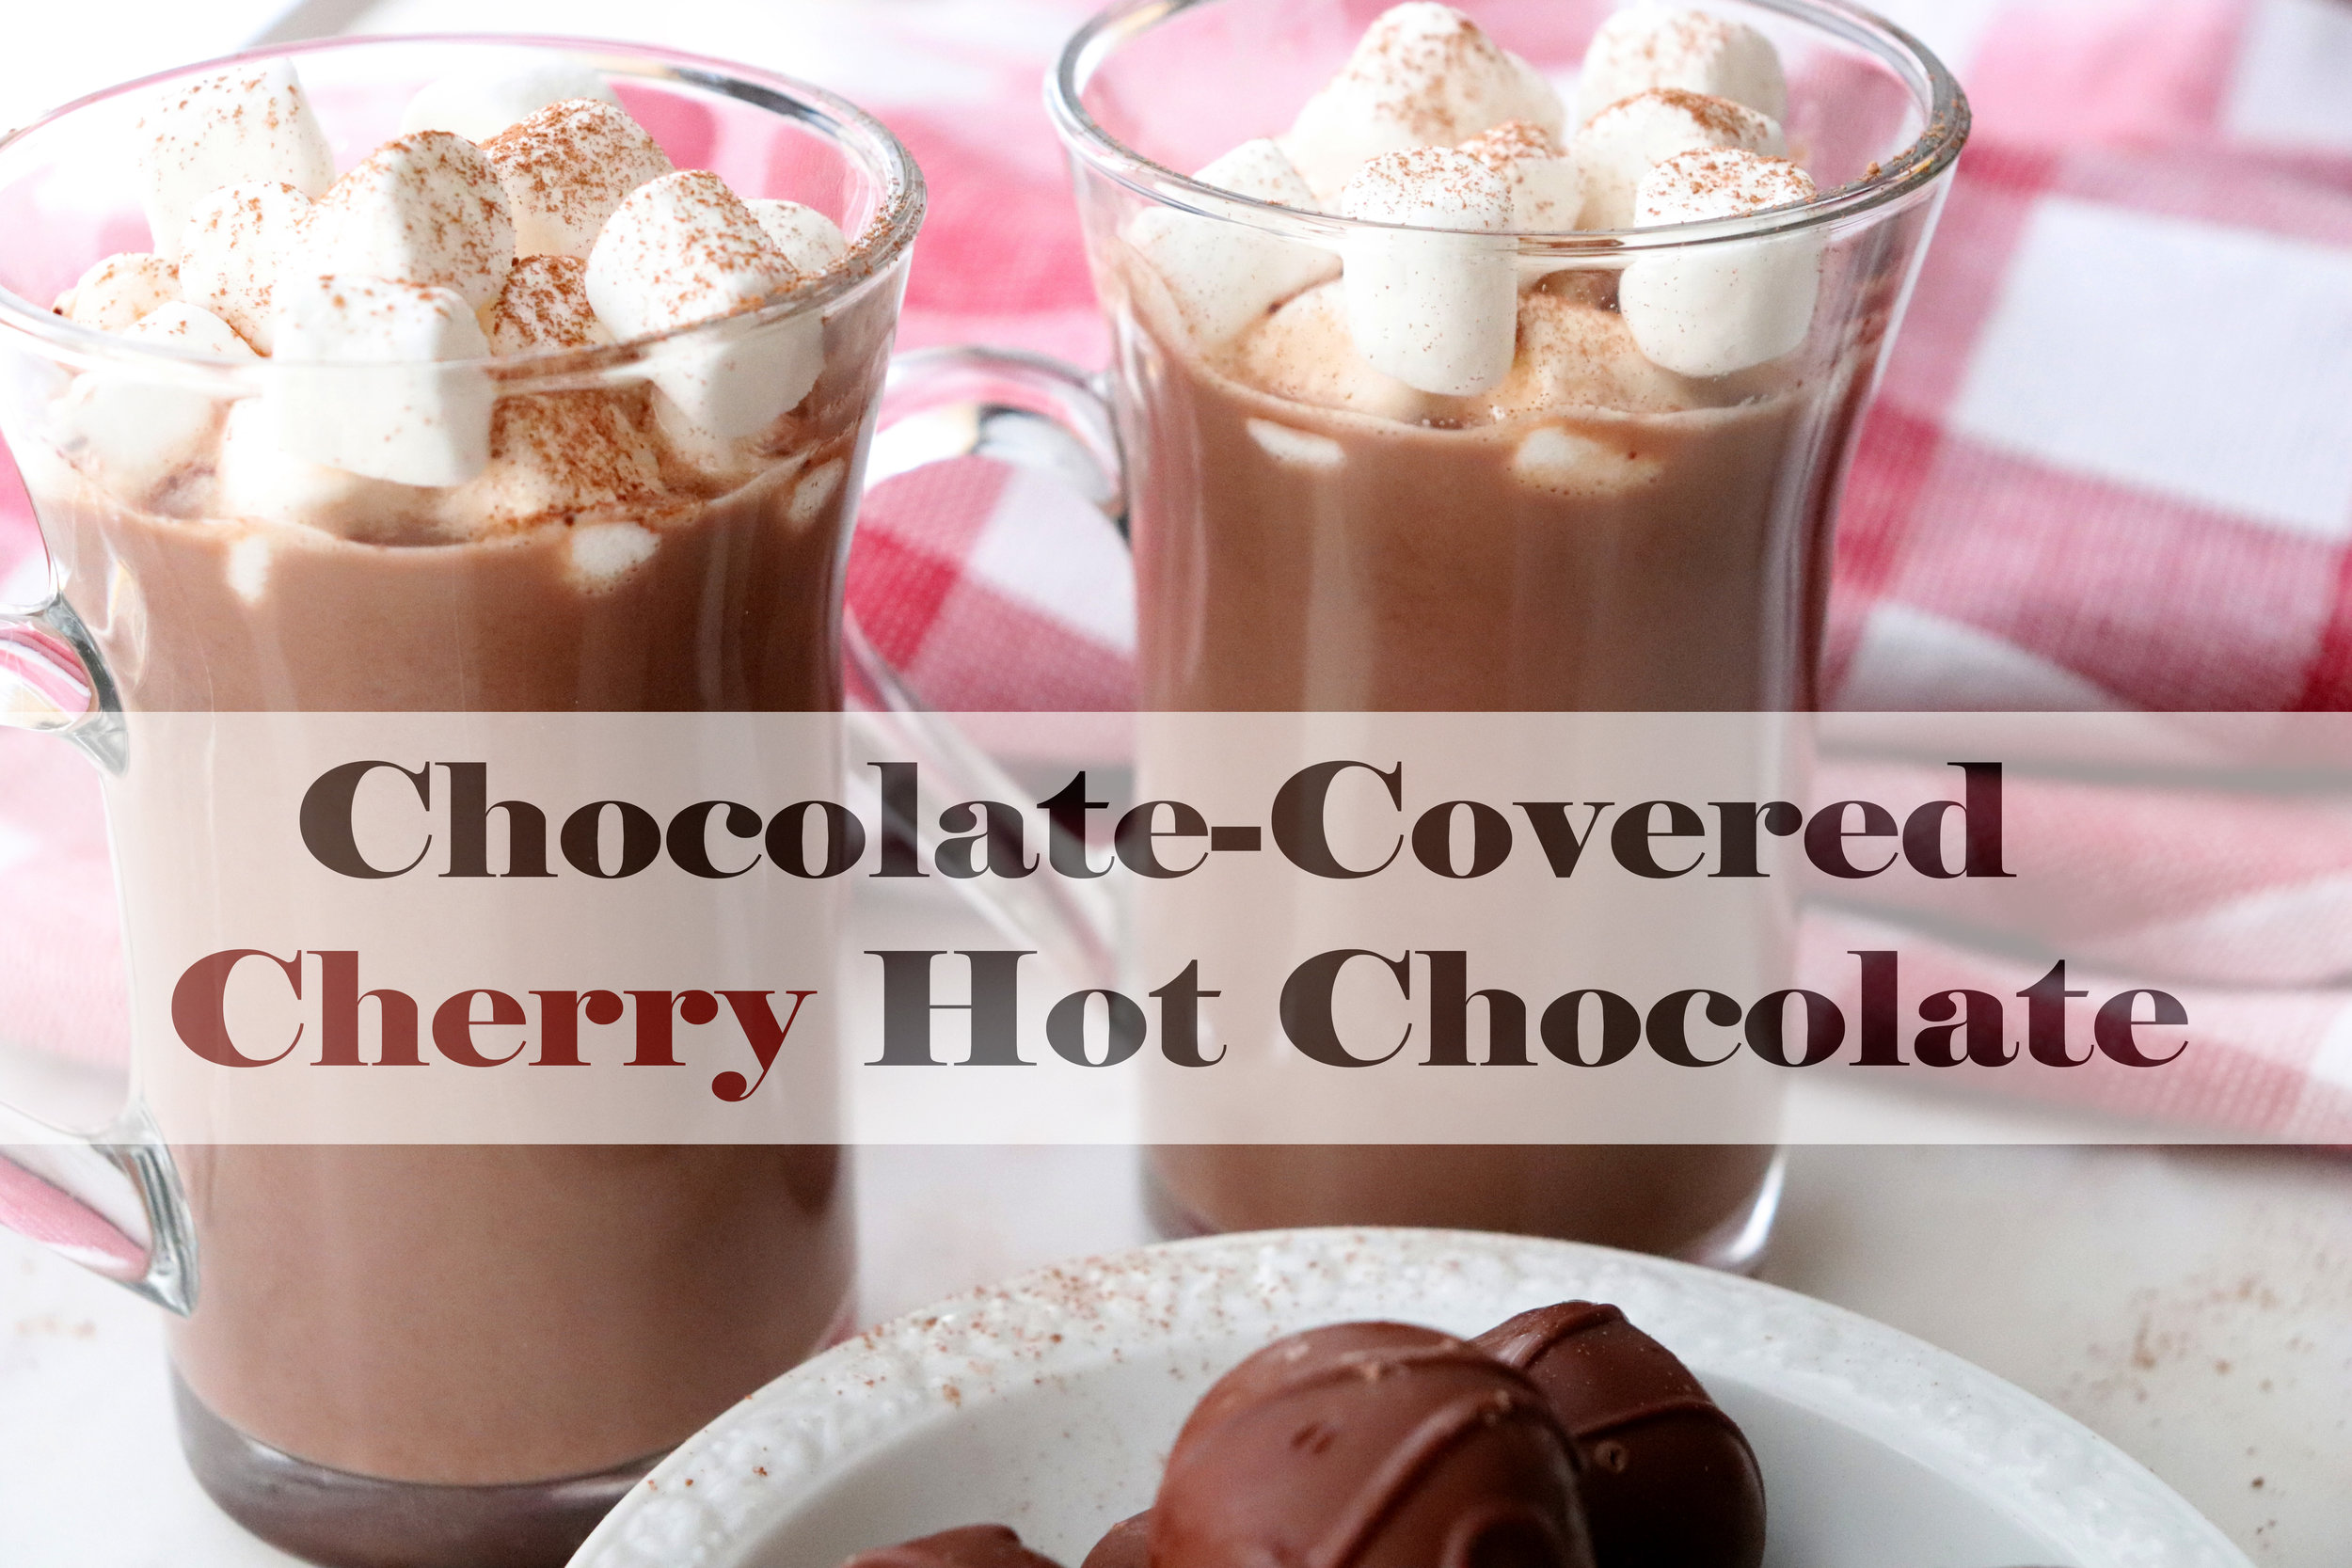 Chocolate-Covered Cherry Hot Chocolate